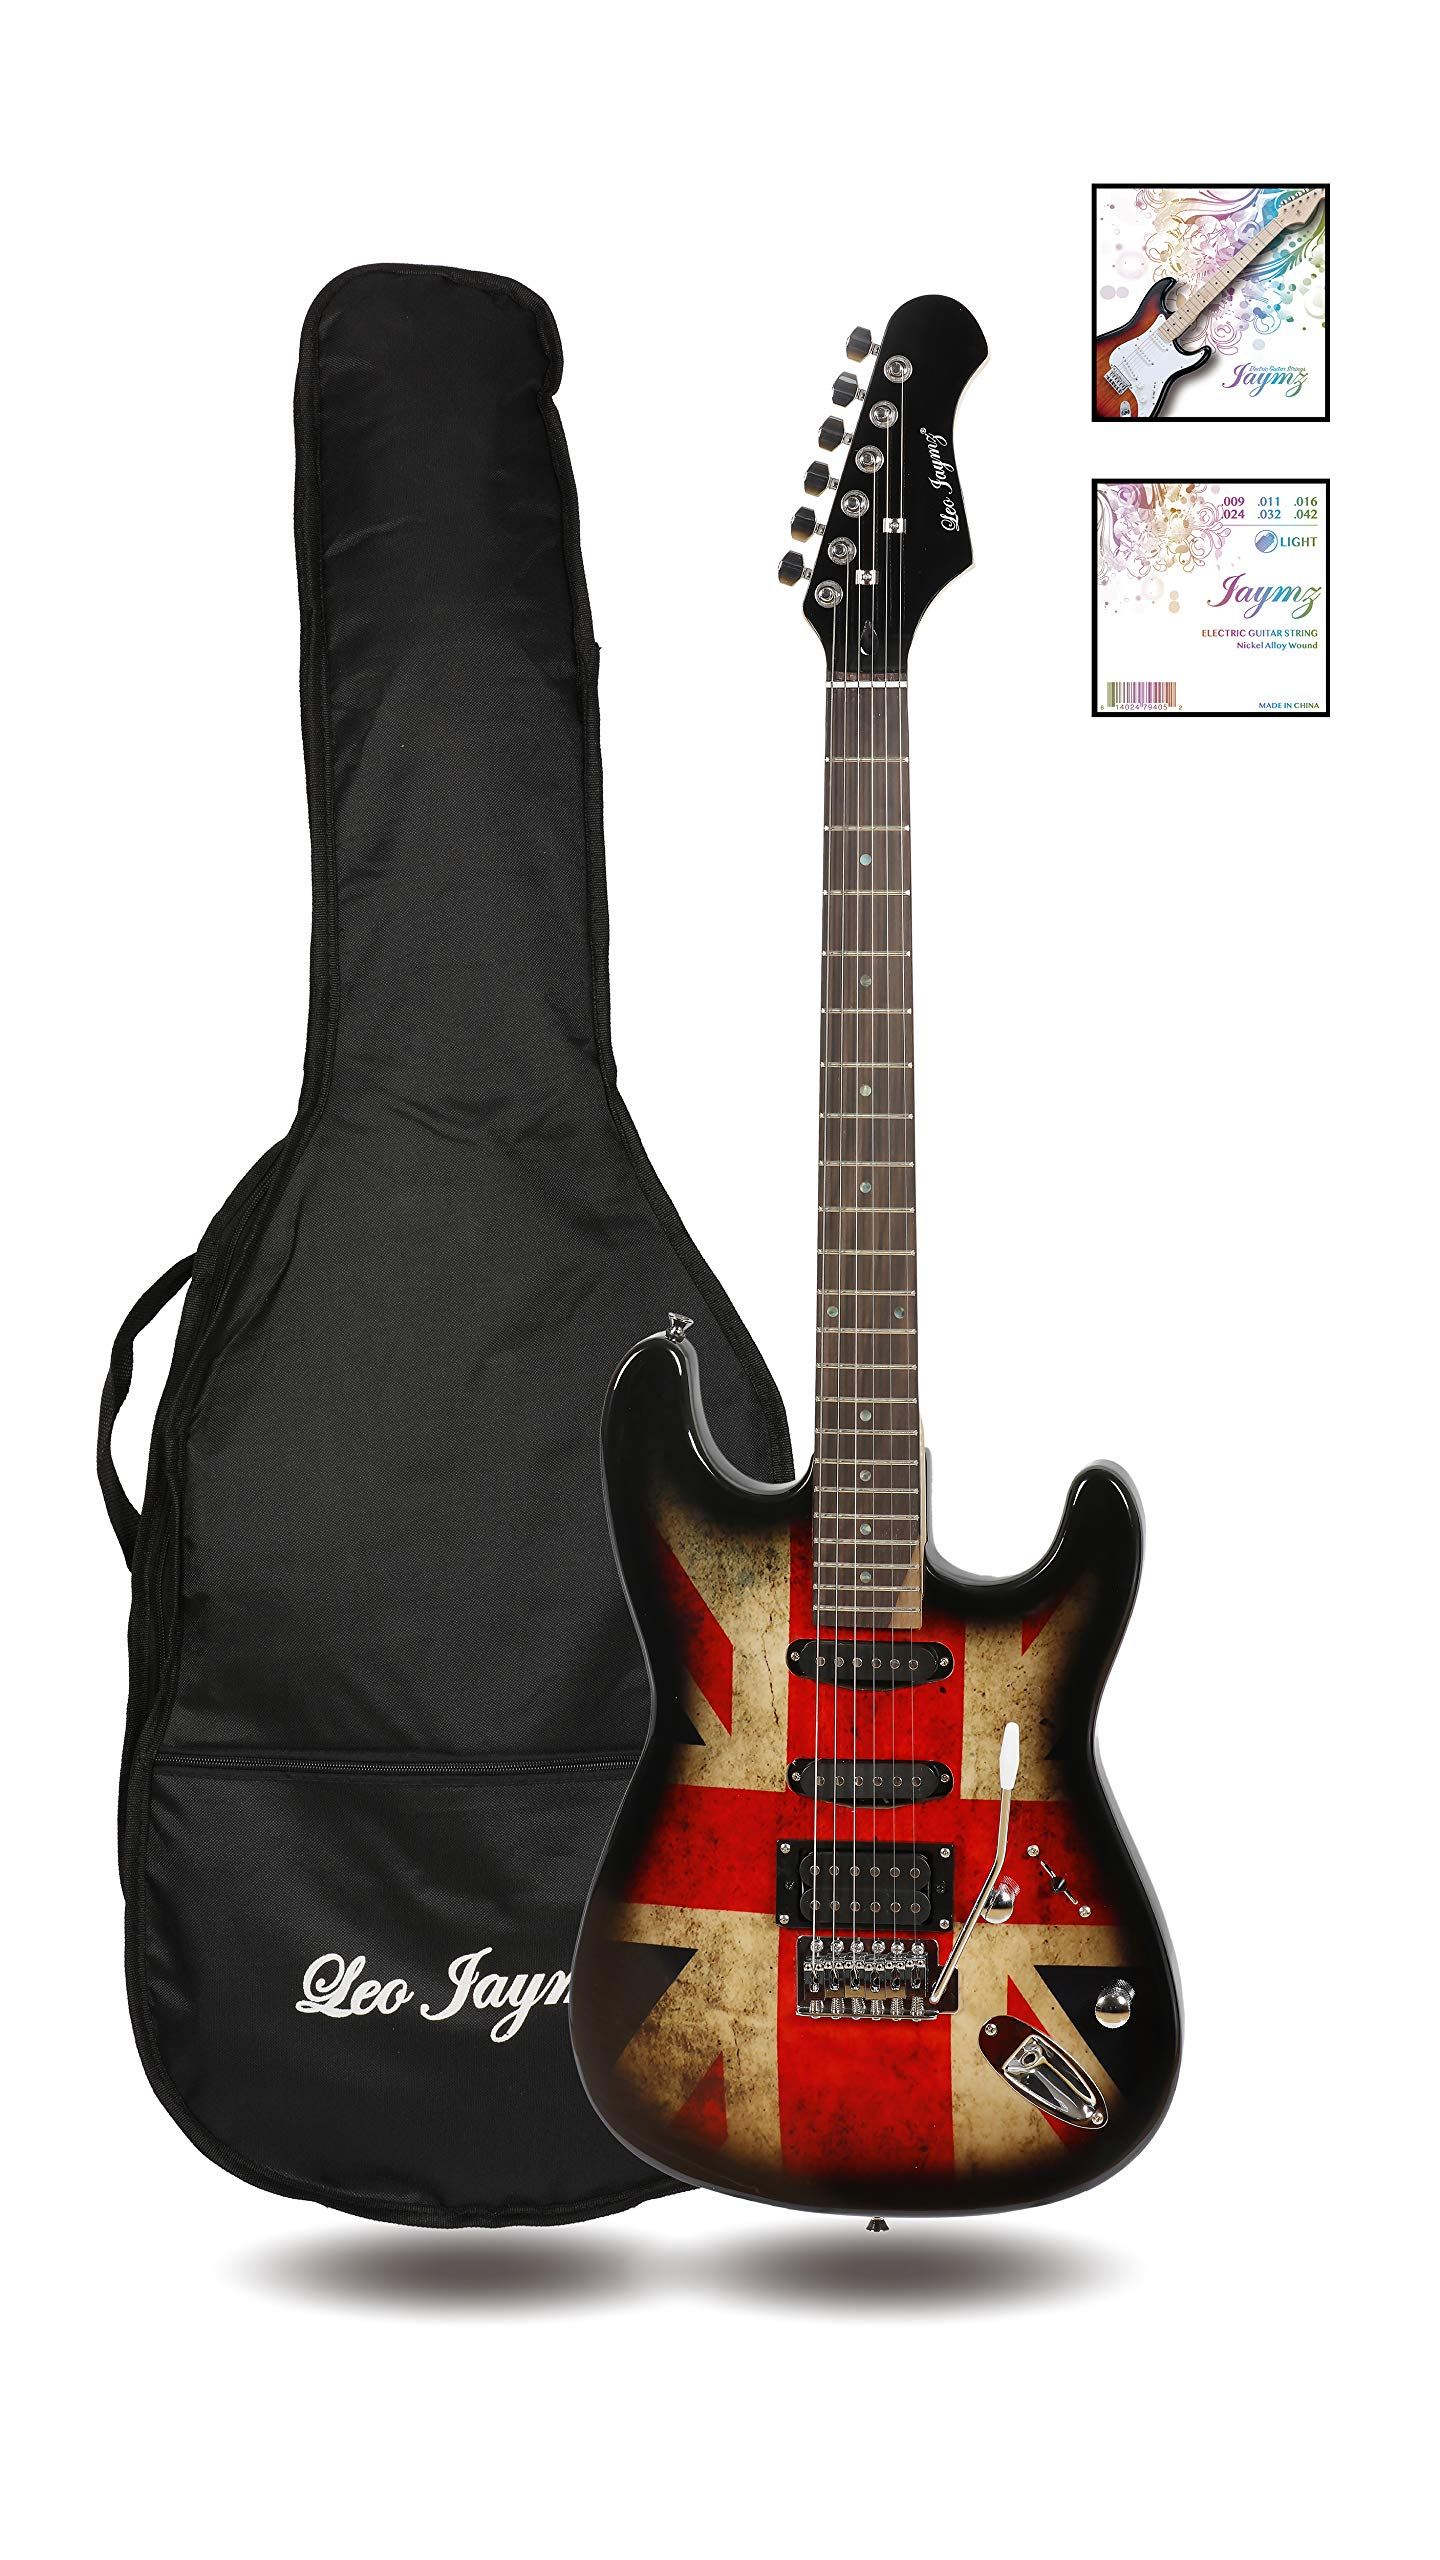 39'' Full Size ST Style Electric Guitar - with UK Flag Sticker Graphic Design - HSS Pickups with Super Light String for Beginners. by Leo Jaymz